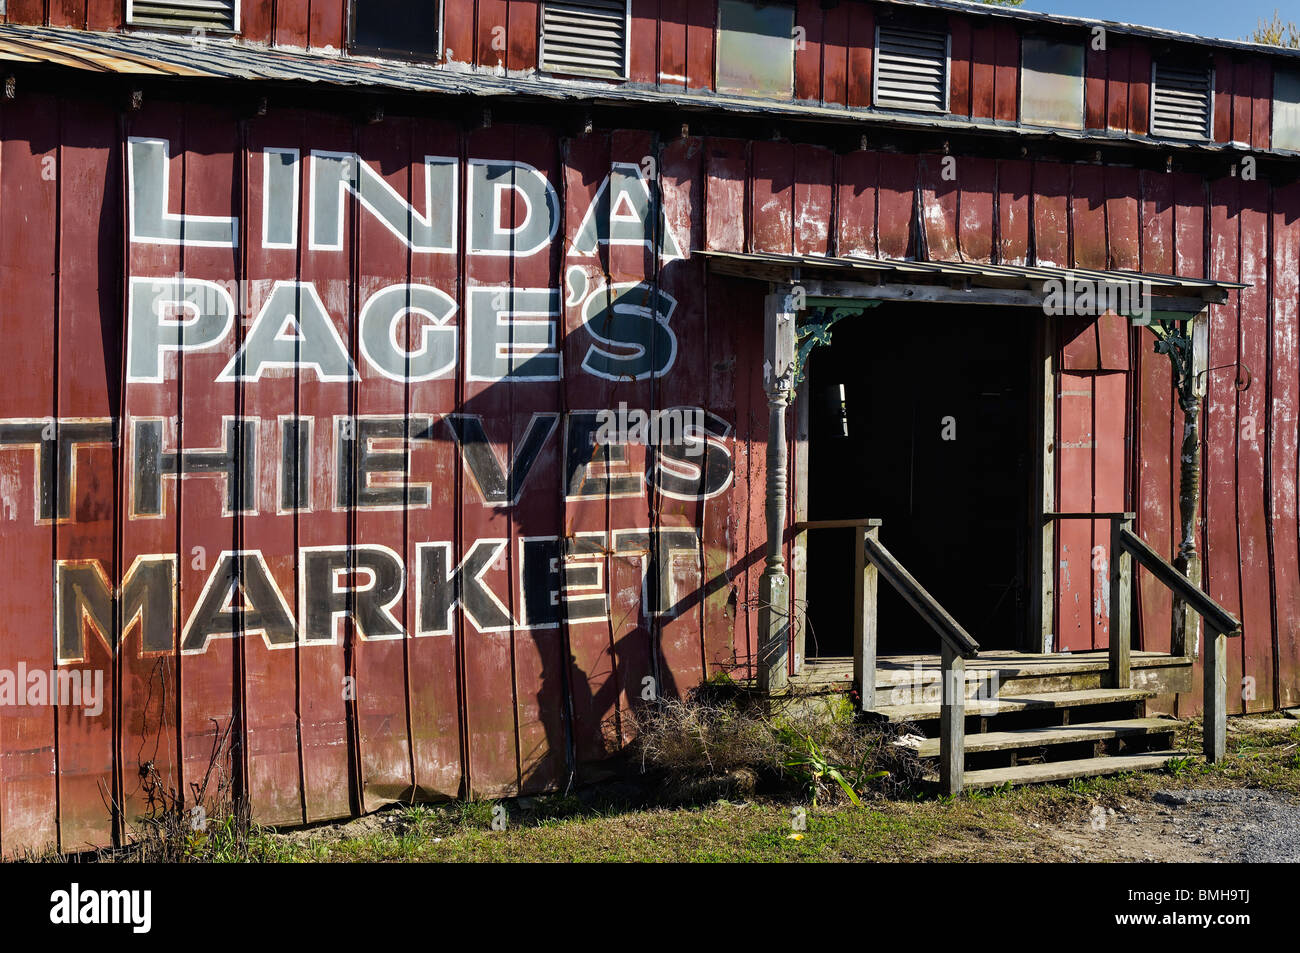 Thieves Market Antique Store in Mount Pleasant, South Carolina - Stock Image